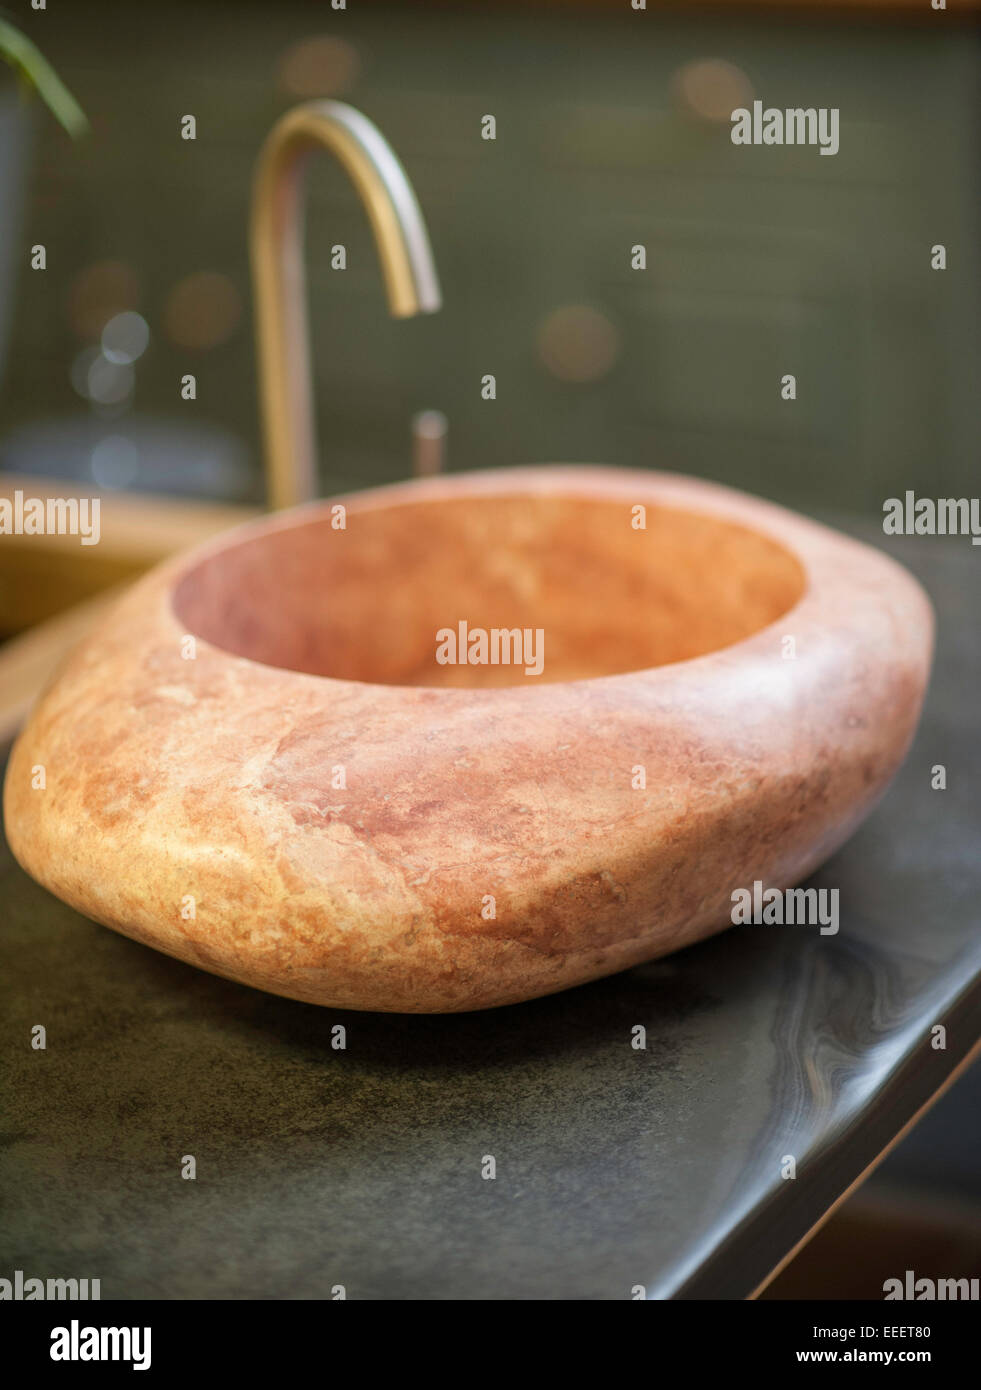 a bespoke sink made from stone - Stock Image